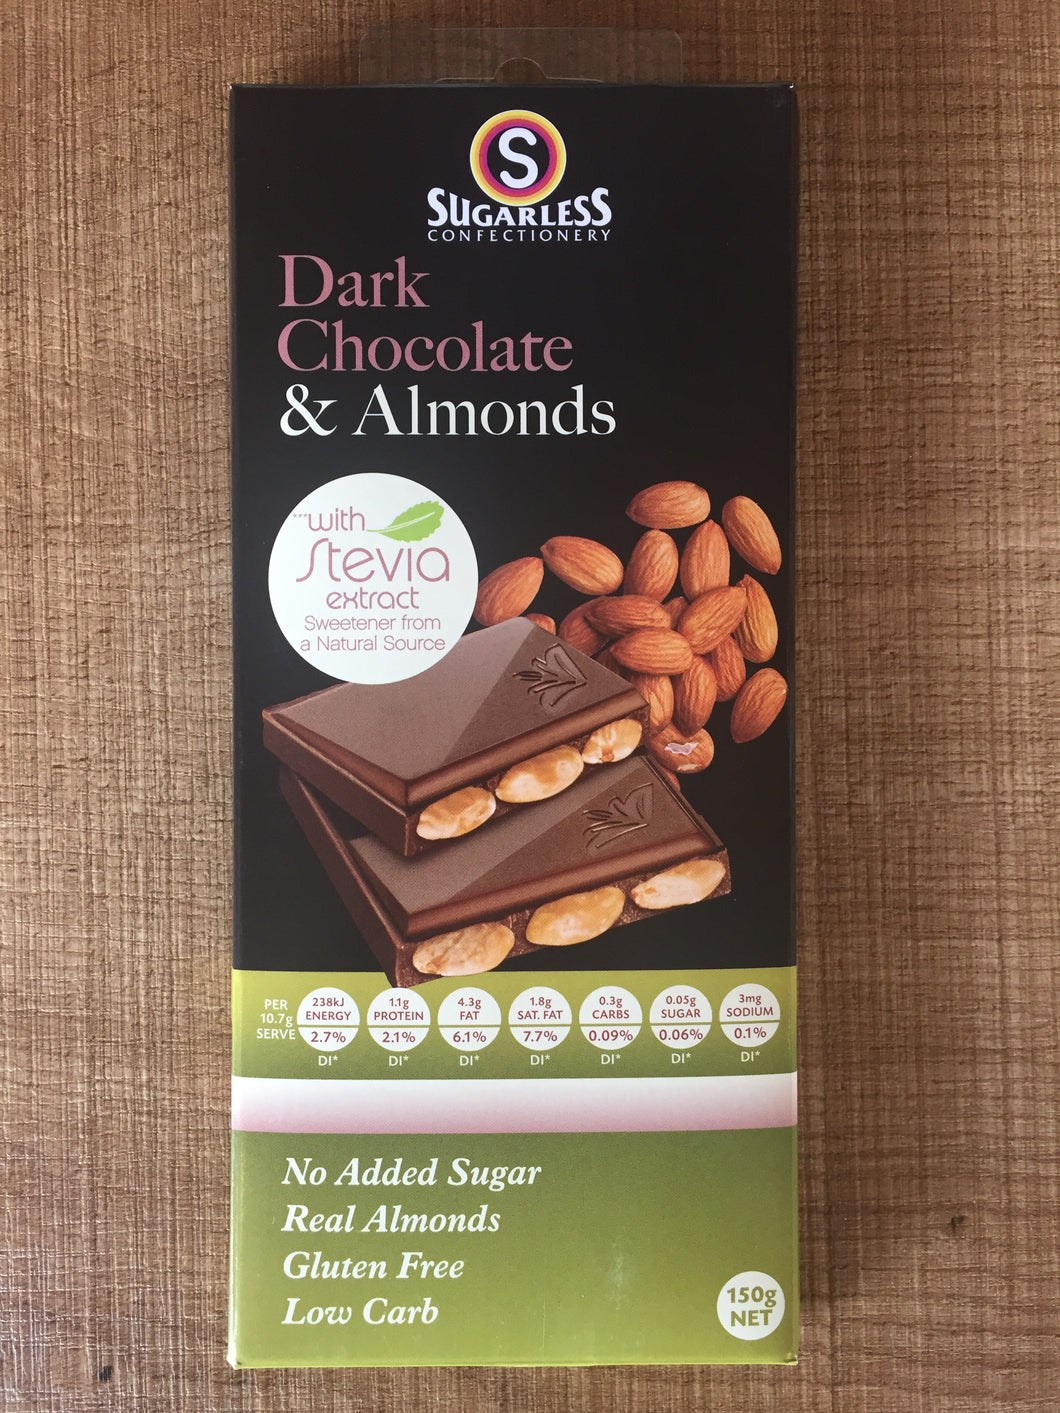 Sugarless Confectionary - Dark Chocolate & Almonds (with stevia)